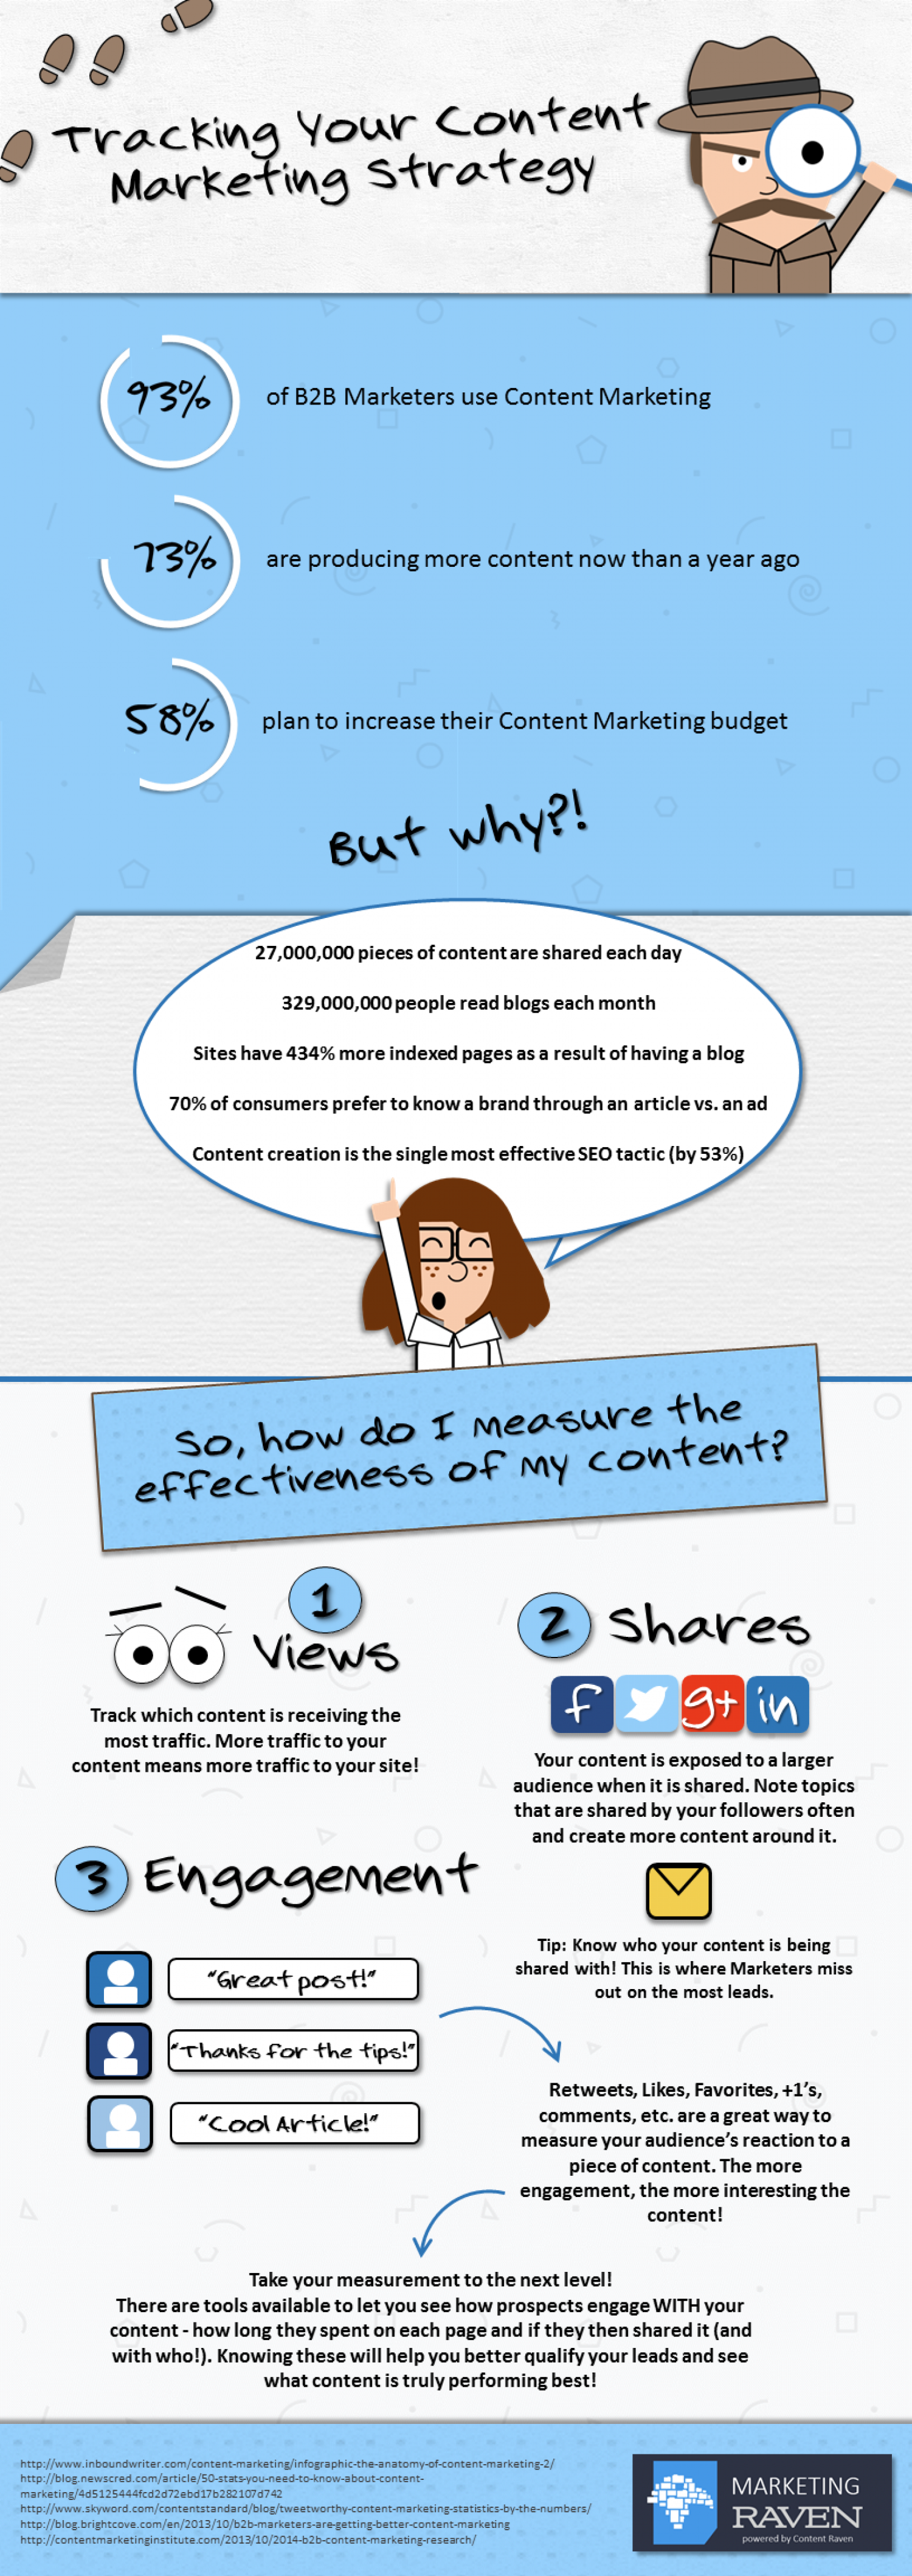 Tracking Your Content Marketing Strategy Infographic